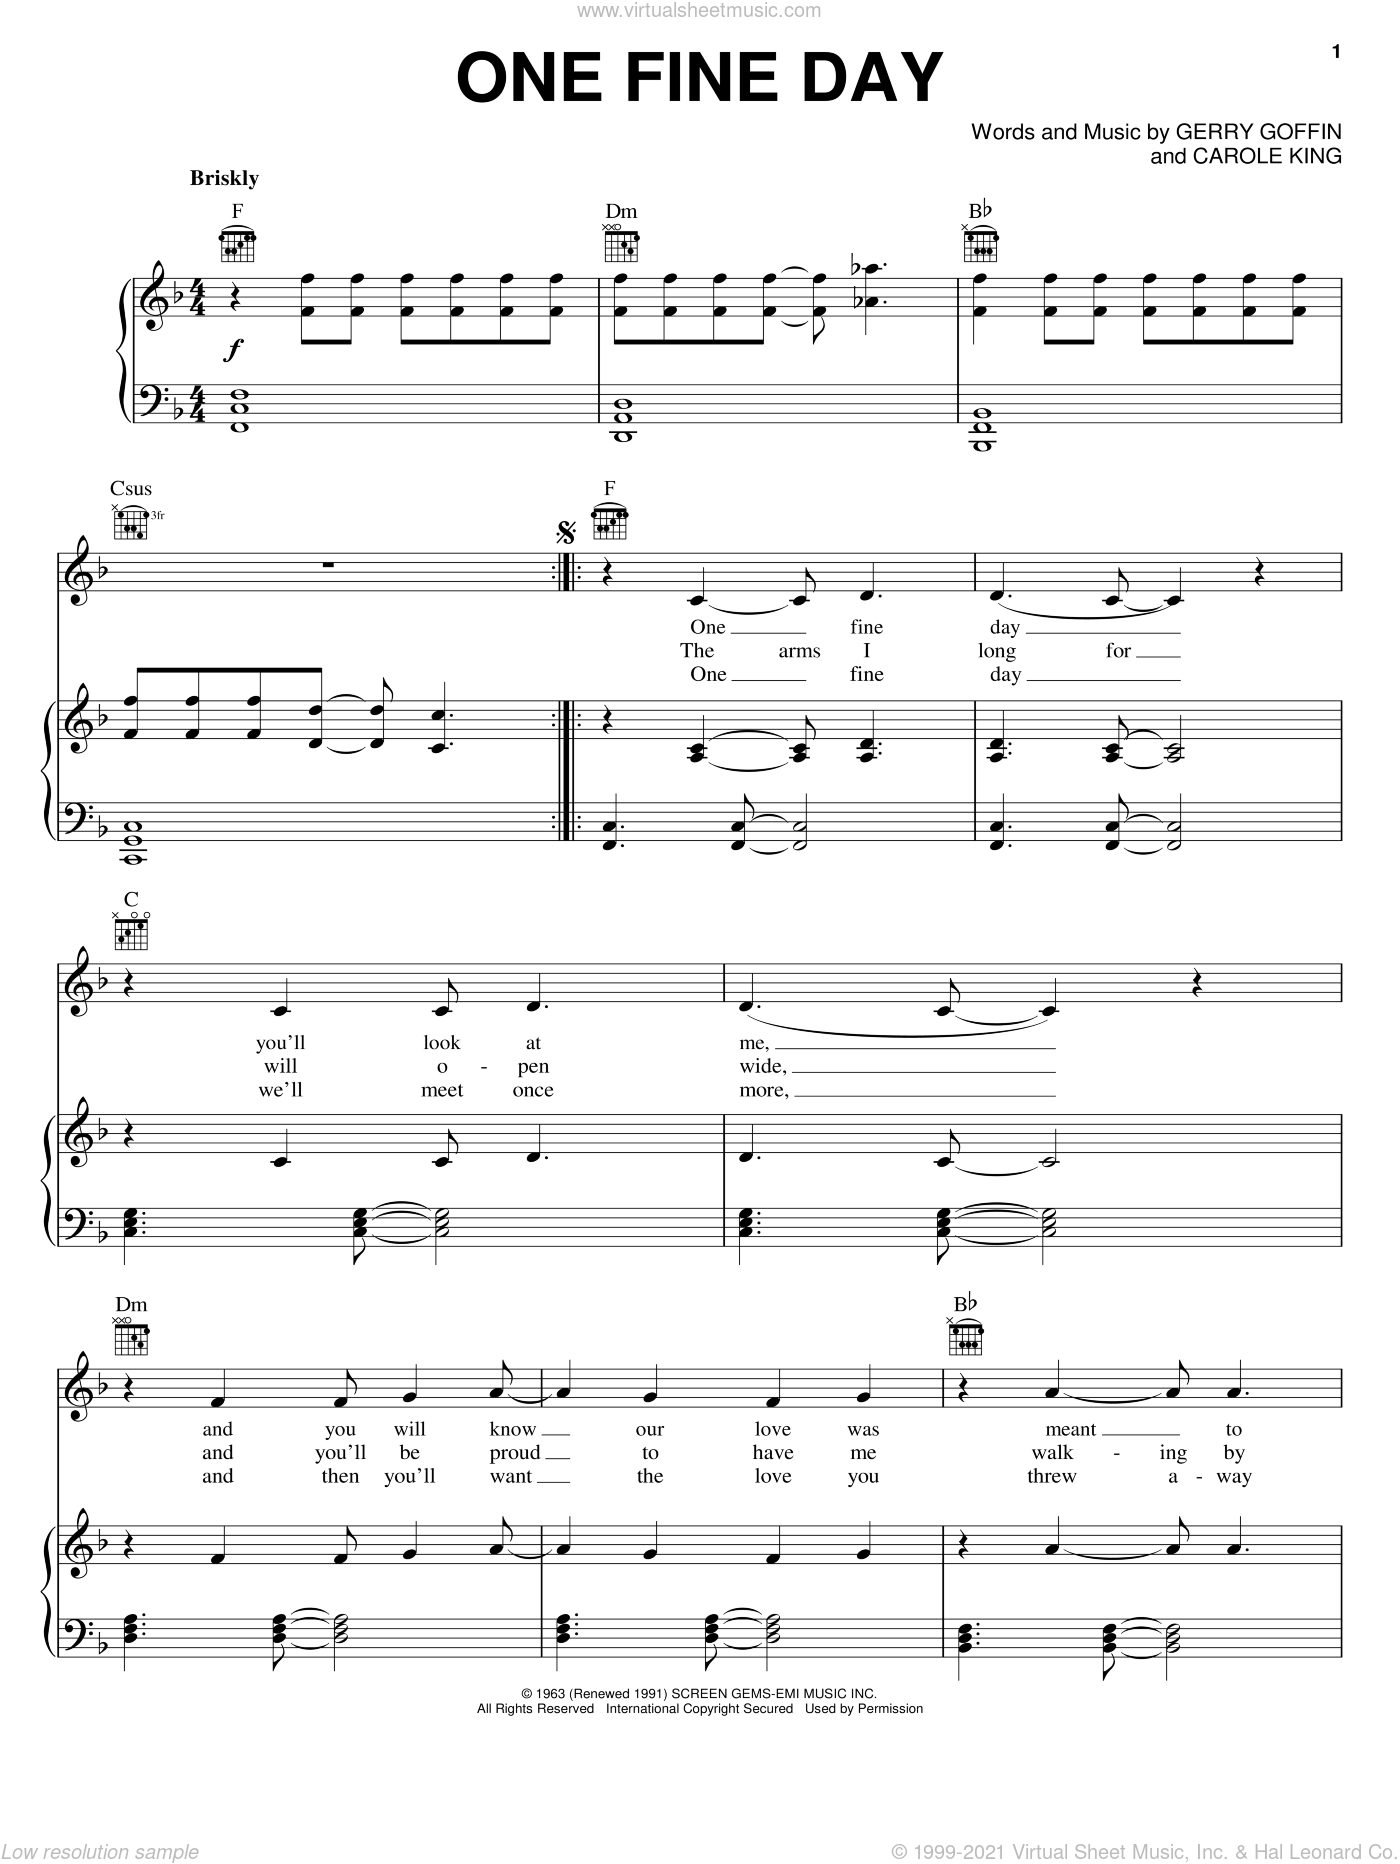 One Fine Day sheet music for voice, piano or guitar by Rita Coolidge, The Chiffons, Carole King and Gerry Goffin, intermediate skill level